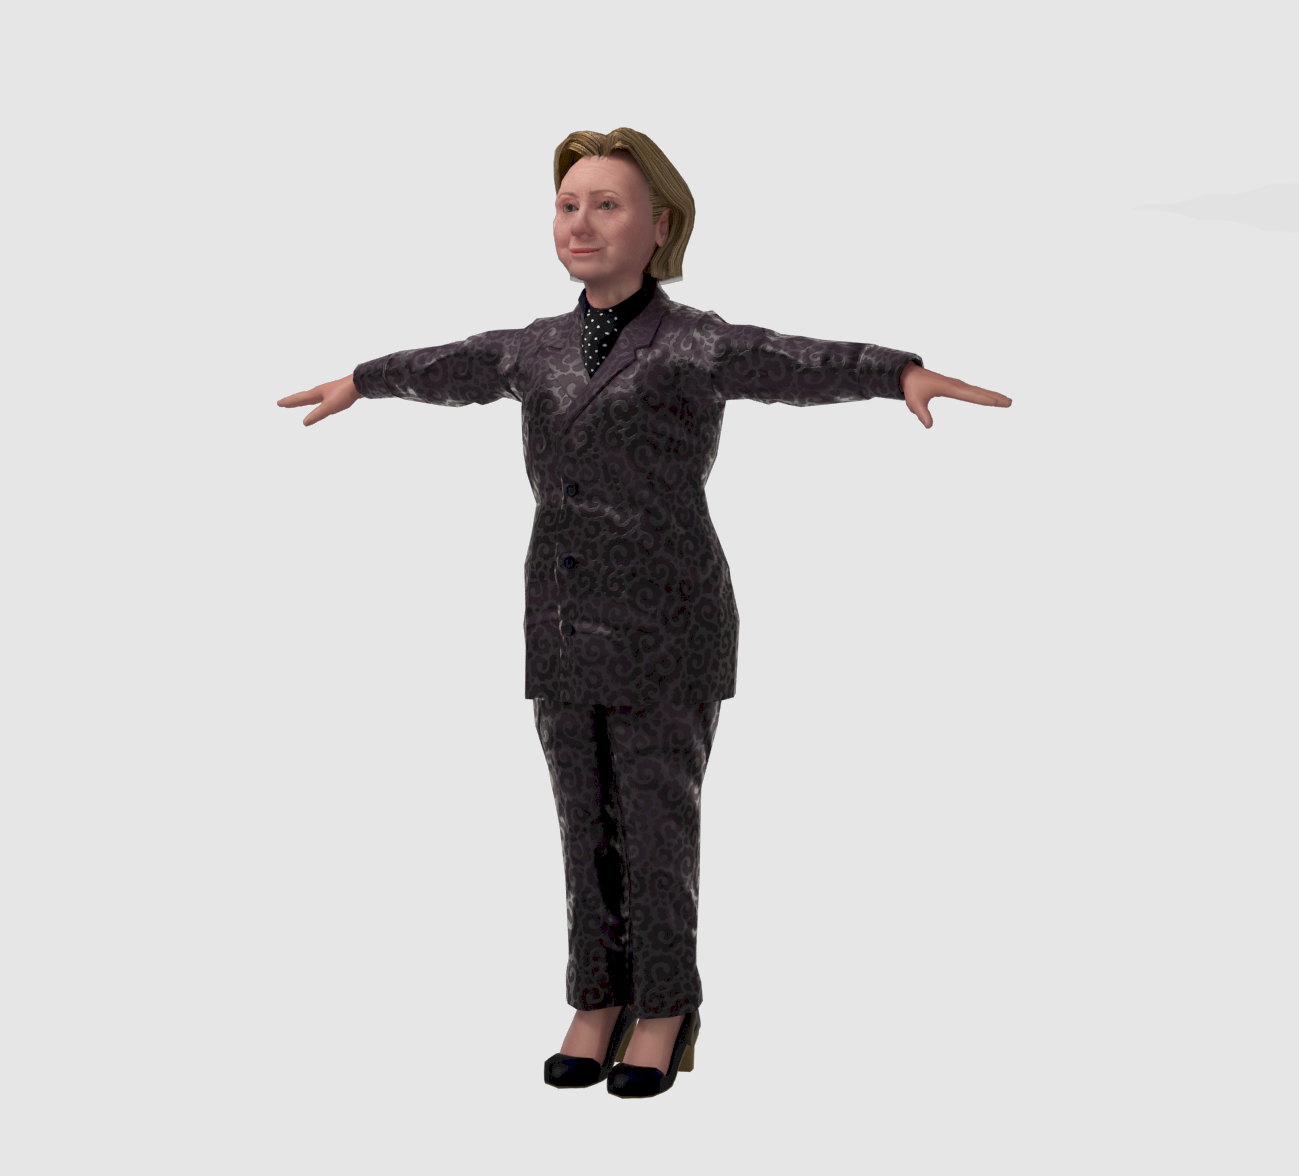 t-pose.png